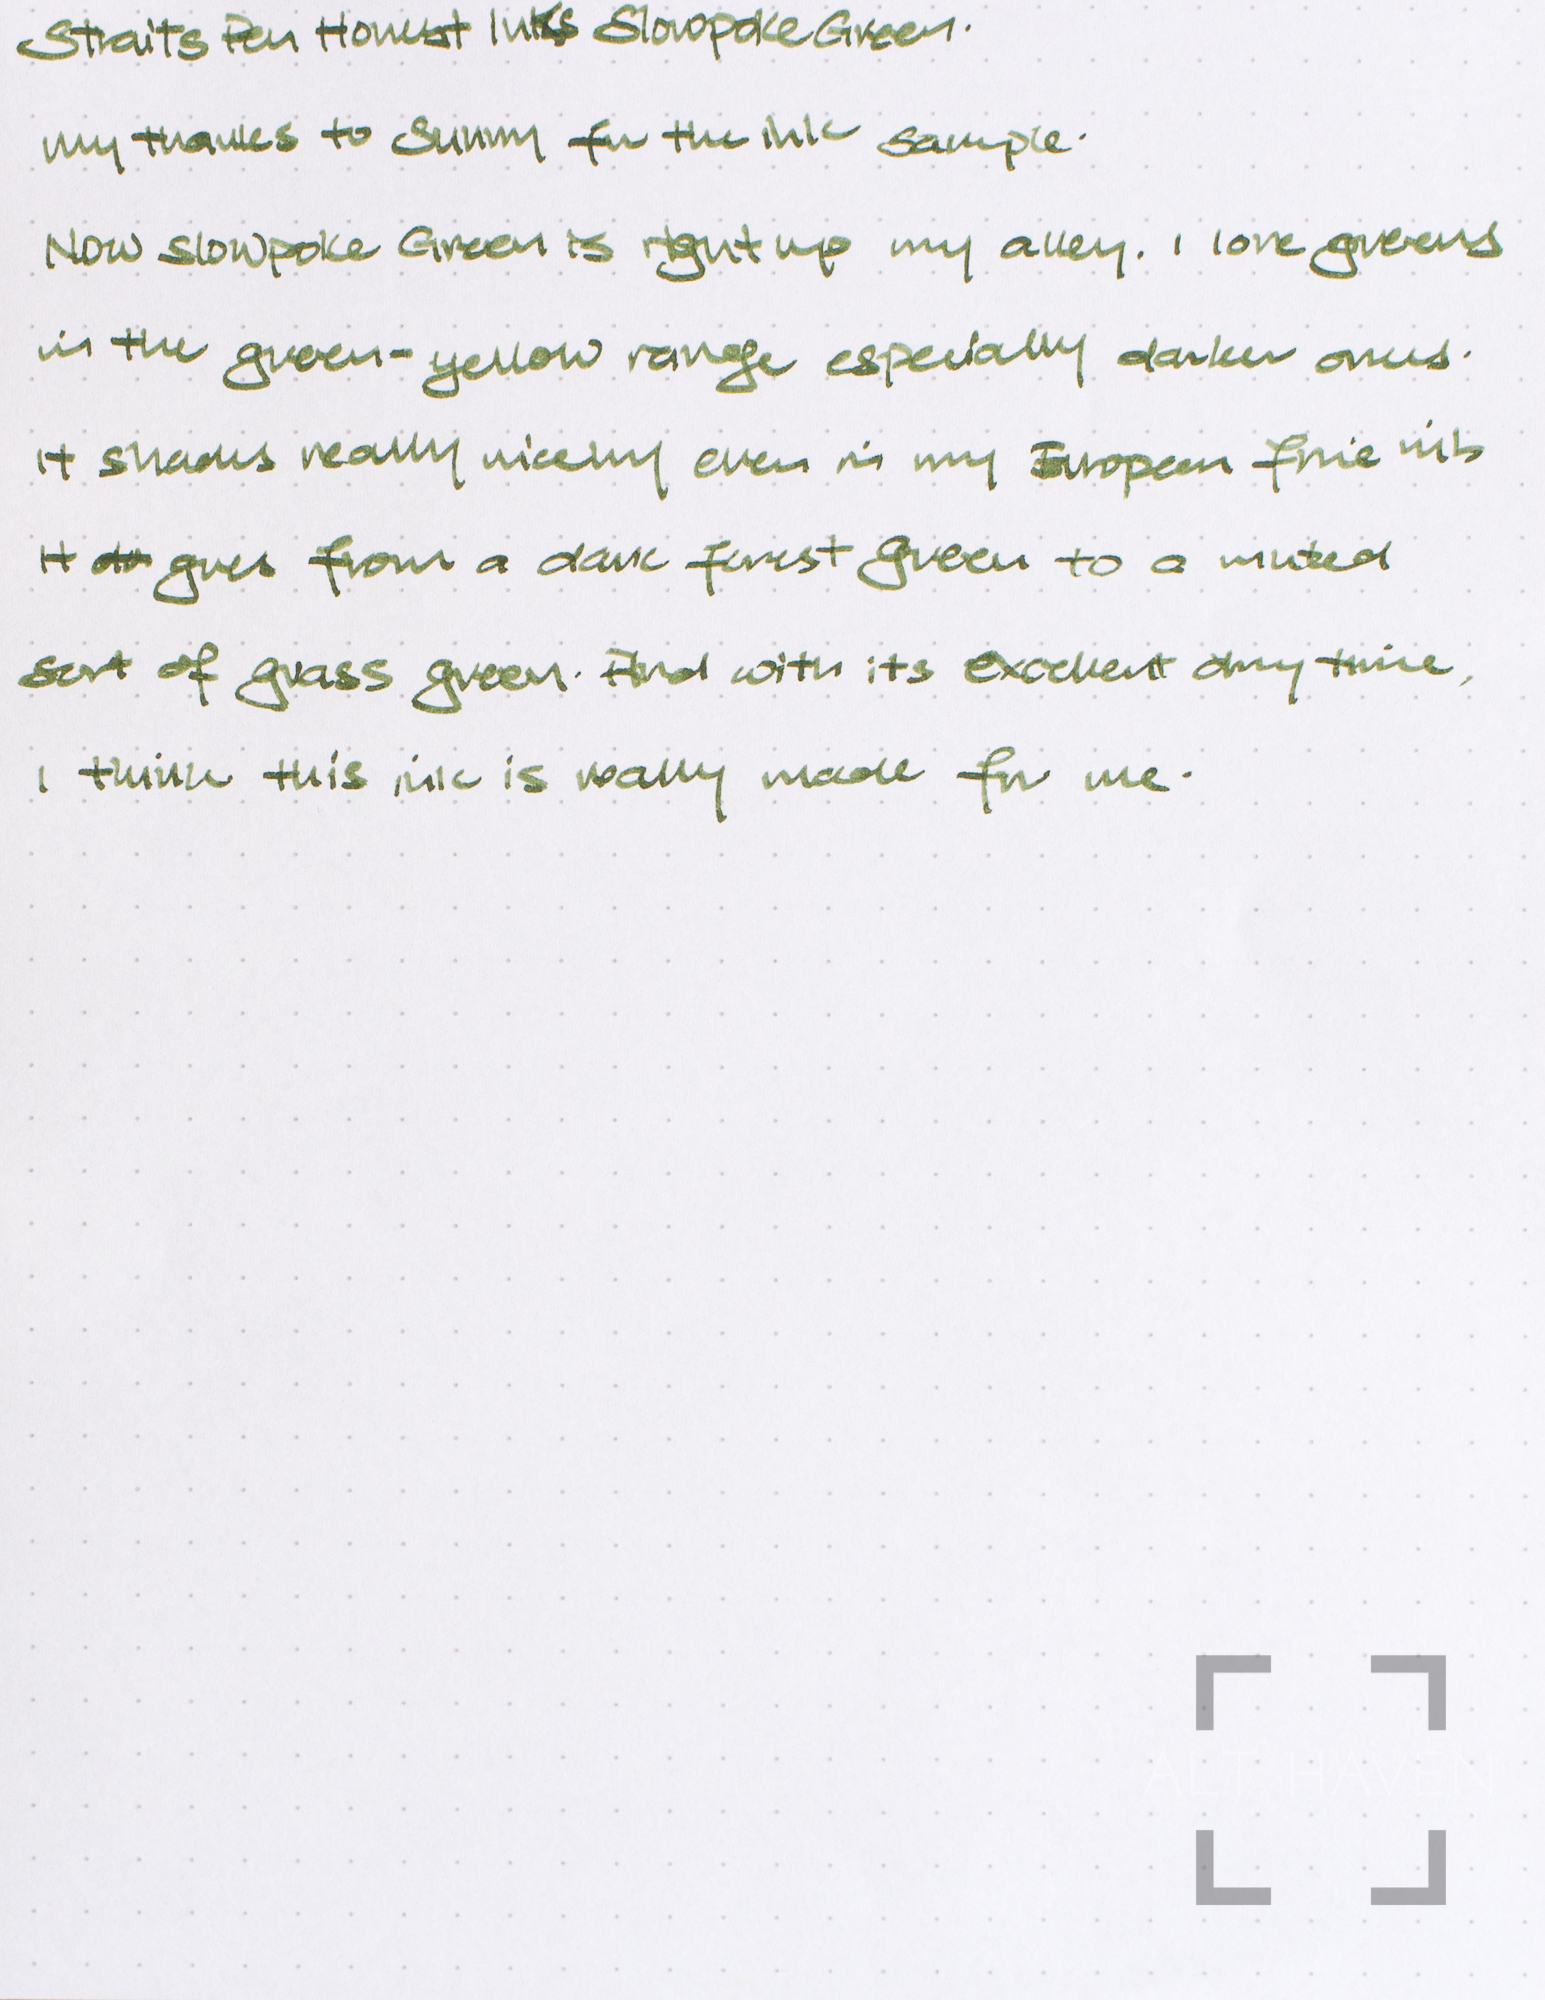 Straits Pen Honest Inks Slowpoke Green-2.jpg